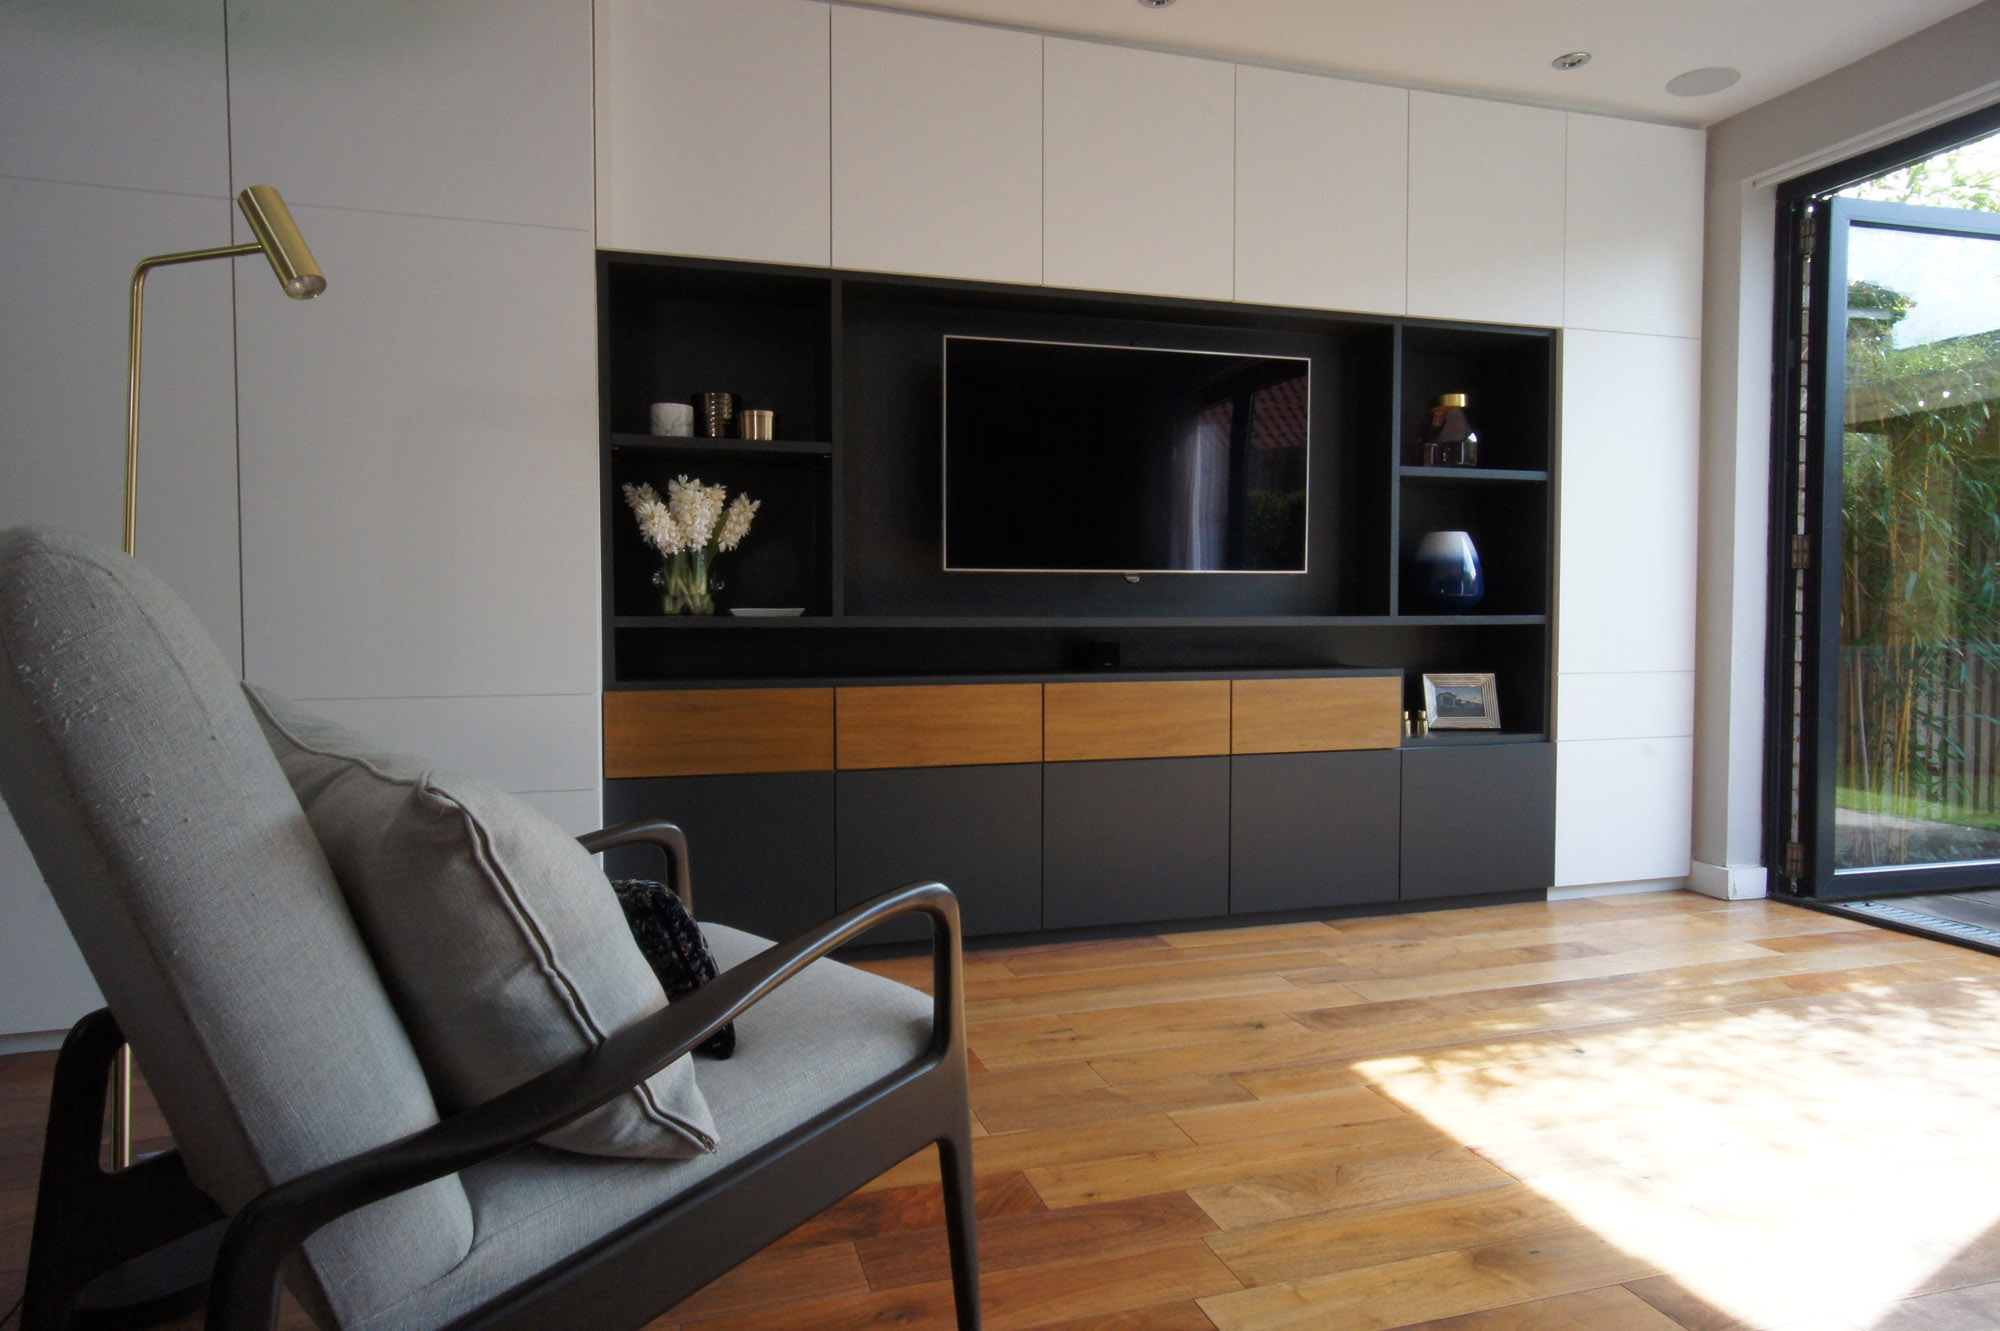 GW-Cabinetry-Interior-Solutions-Media-Cabinets-1.jpg